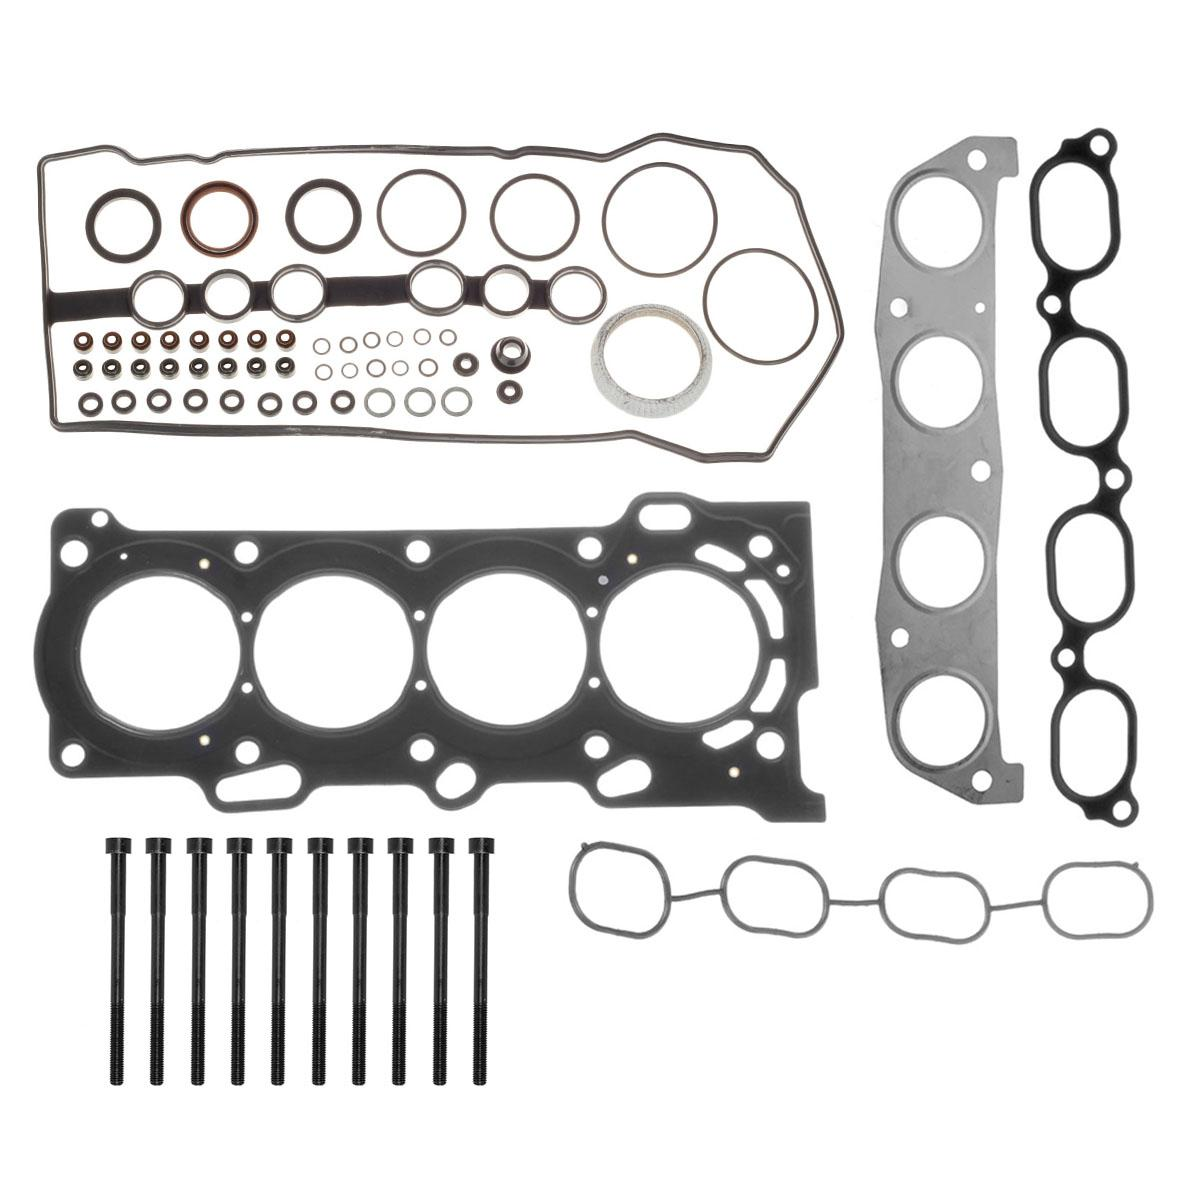 Head Gasket Bolts Kit For 98-05 Toyota PONTIAC VIBE 1.8L